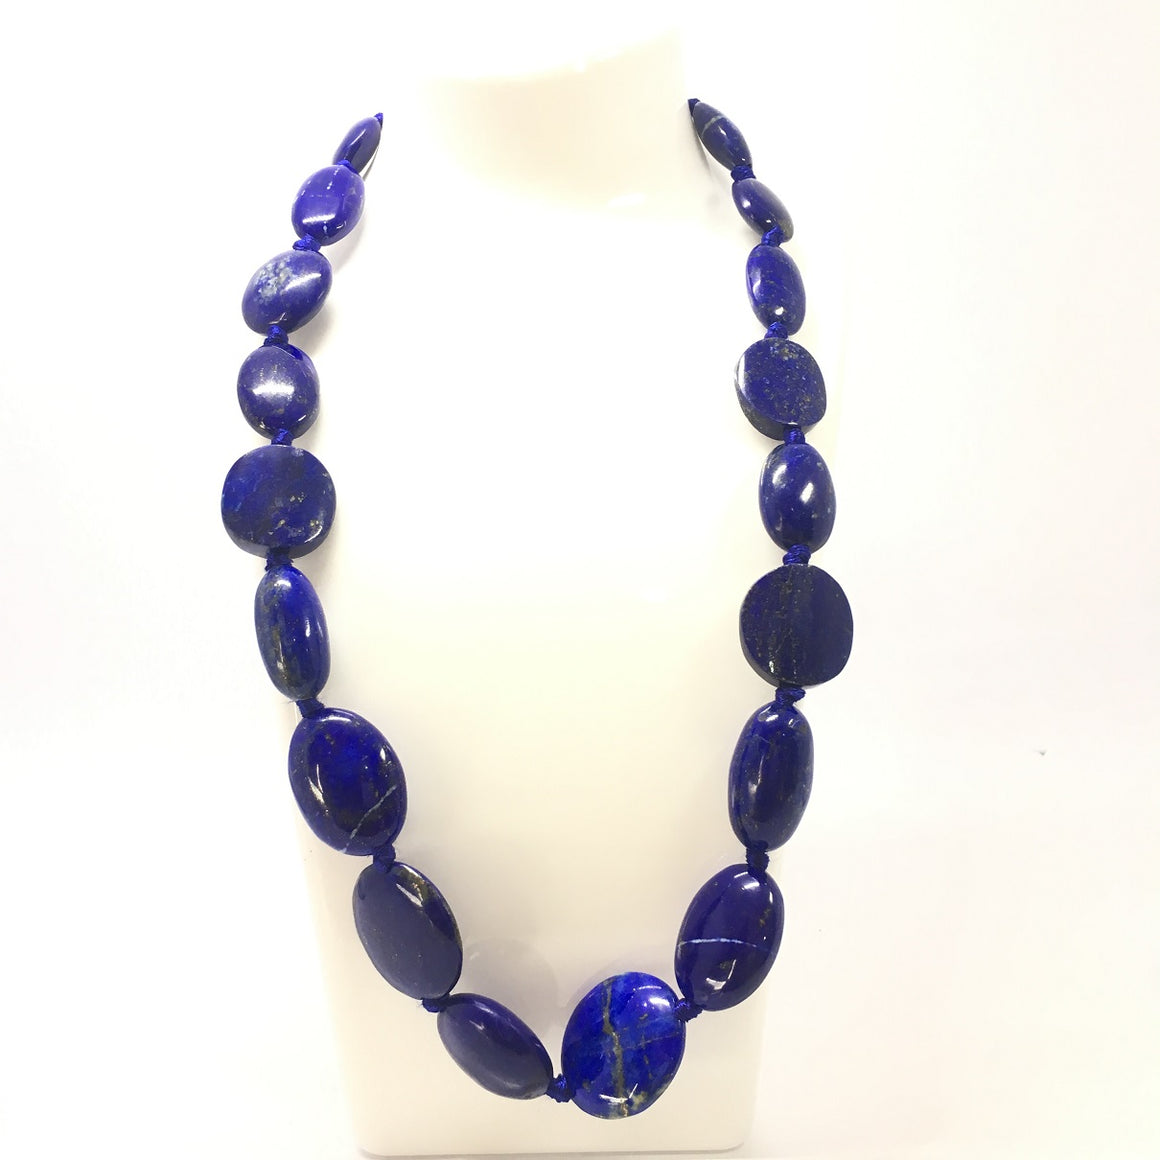 497.0 Carat, 19 Oval Beads Lapis Lazuli Necklace with Metal Lock